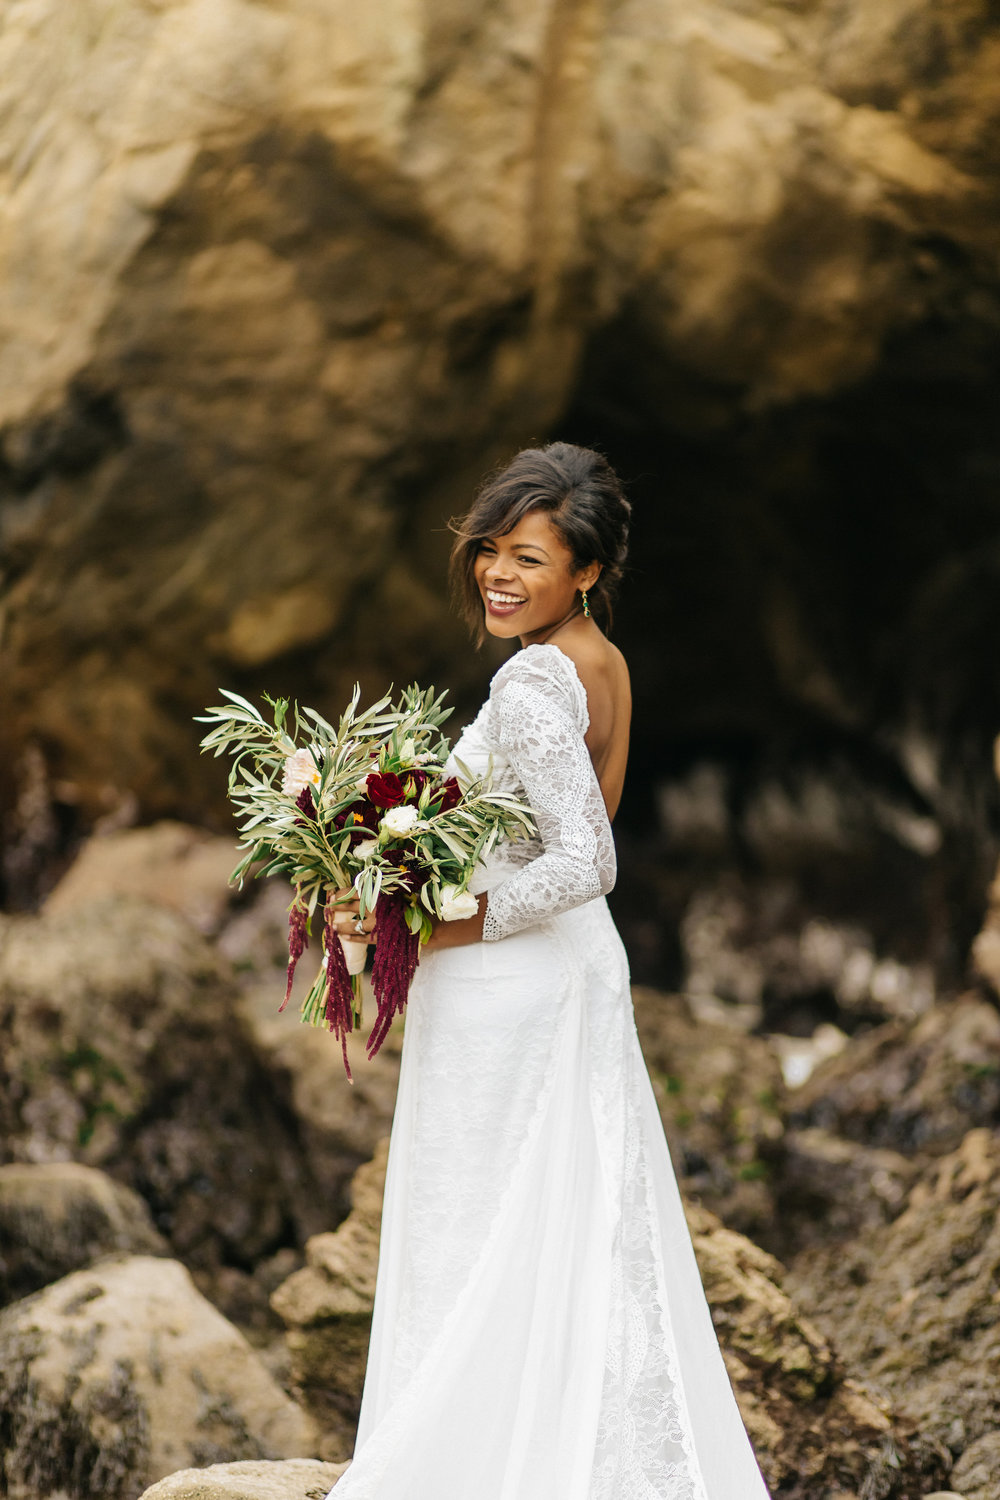 Smiling bride after elopement in Big Sur, CA